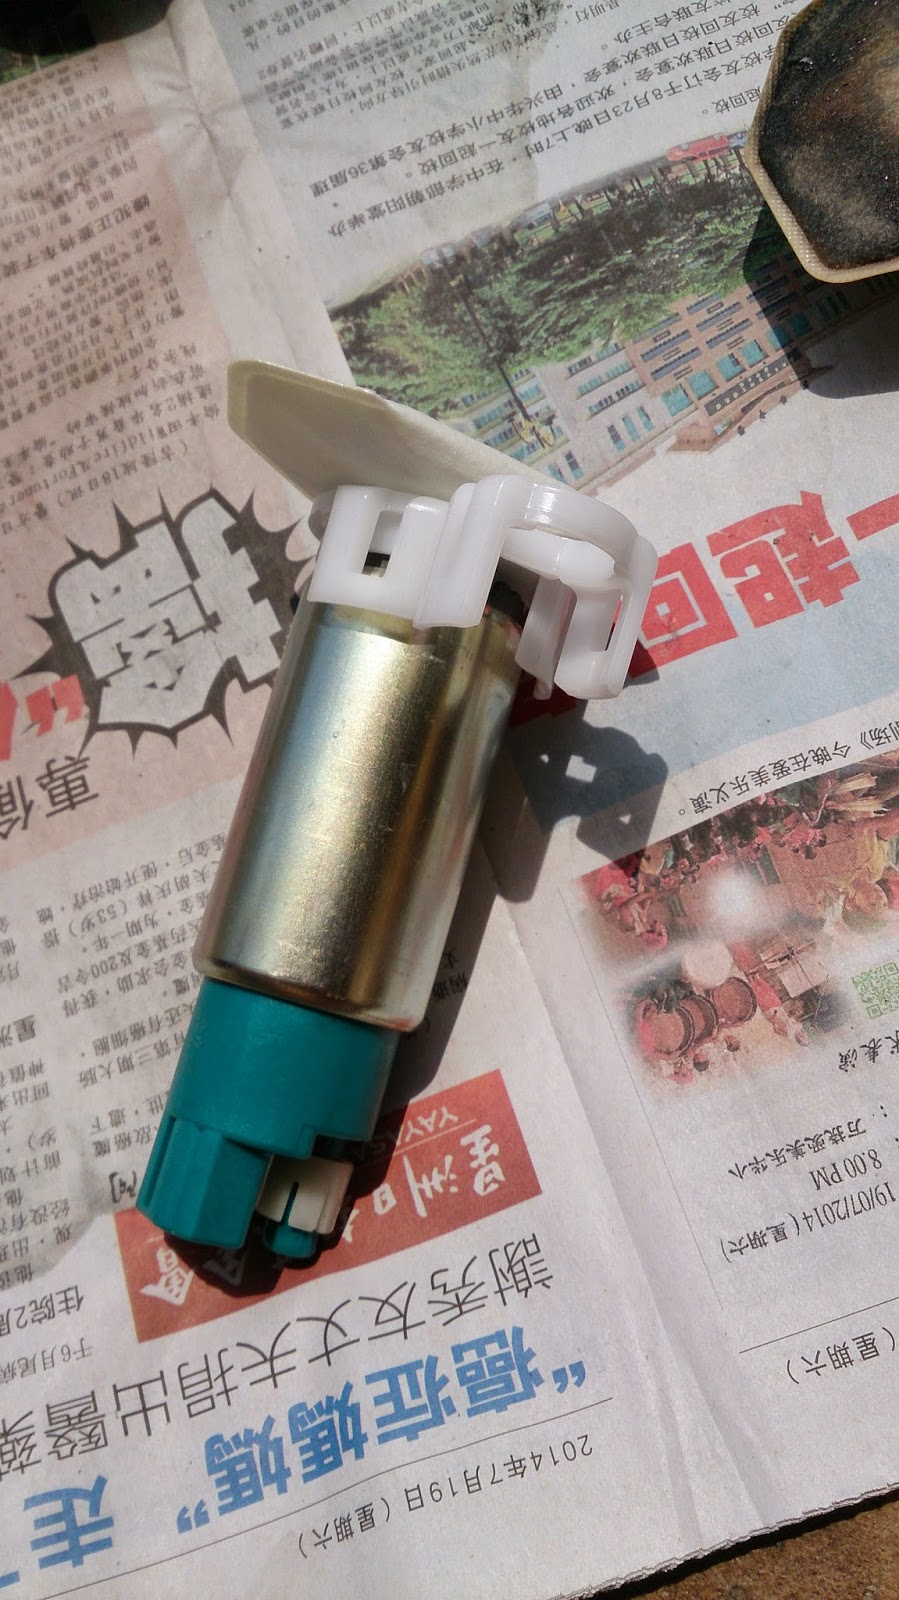 How To Change Fuel Filter Inspira Lancer Mod Guide 2015 6 7 Replacement Assemble The Pump Into Holder And Refit It Back Container Black Round Rubber Seal Should Be Push All Way Top So